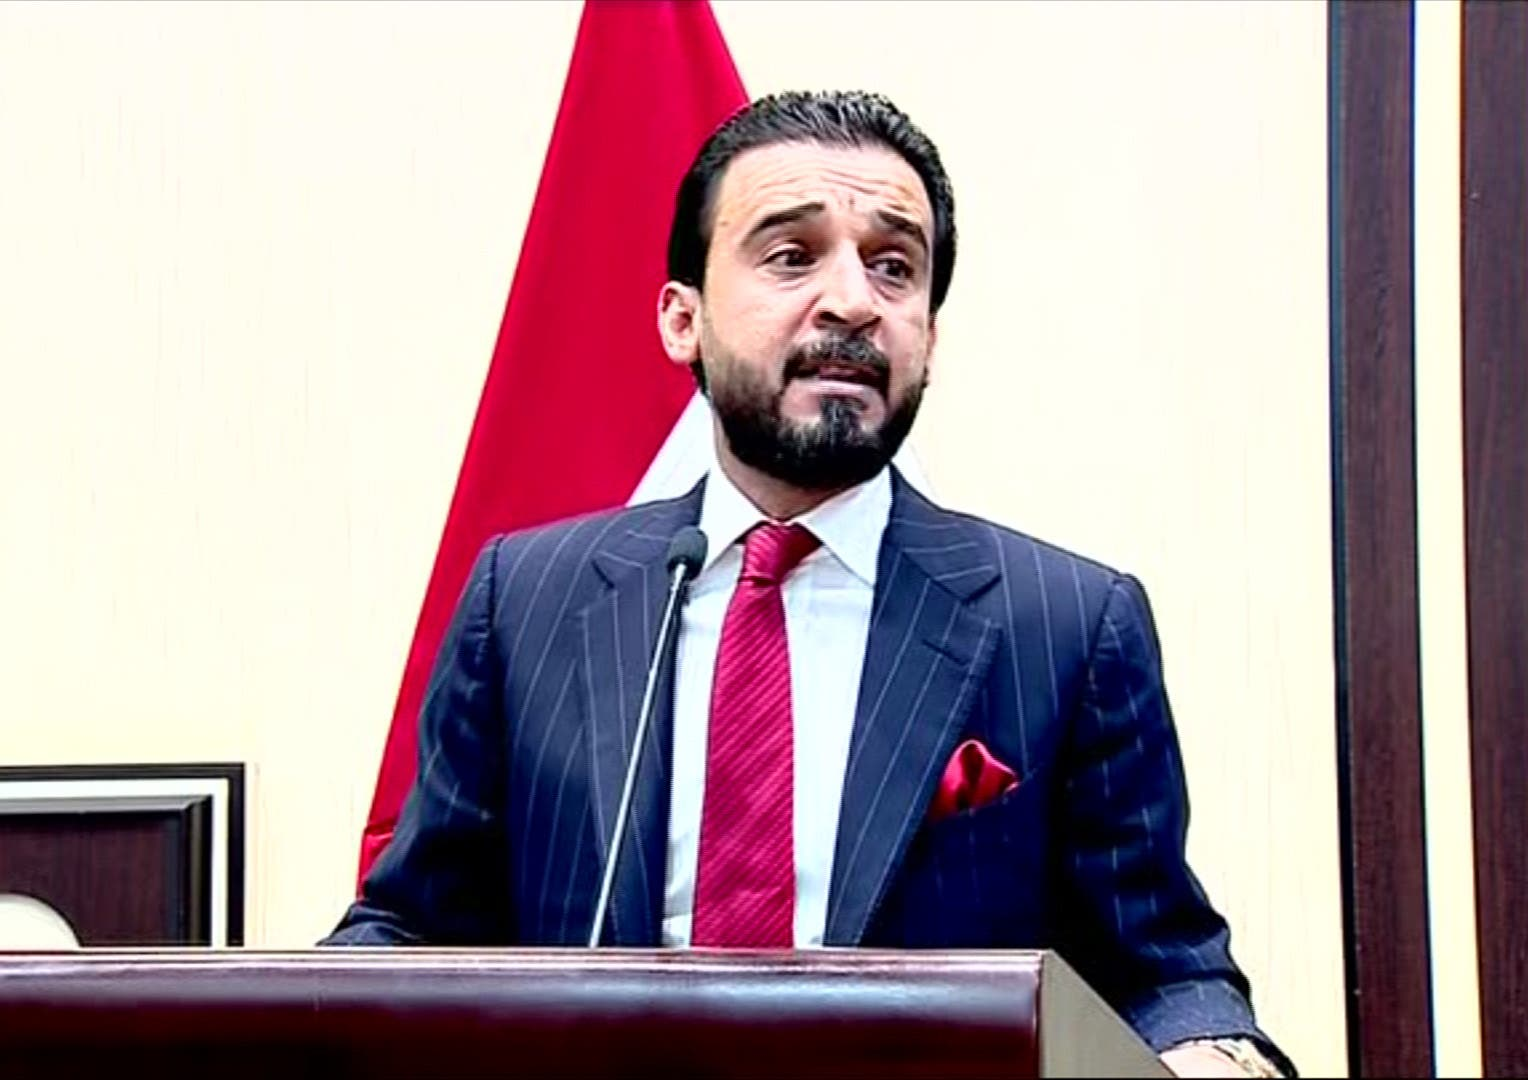 Newly-elected parliament speaker Mohamed Al-Halbusi addressing the chamber in the capital Baghdad. (AFP)